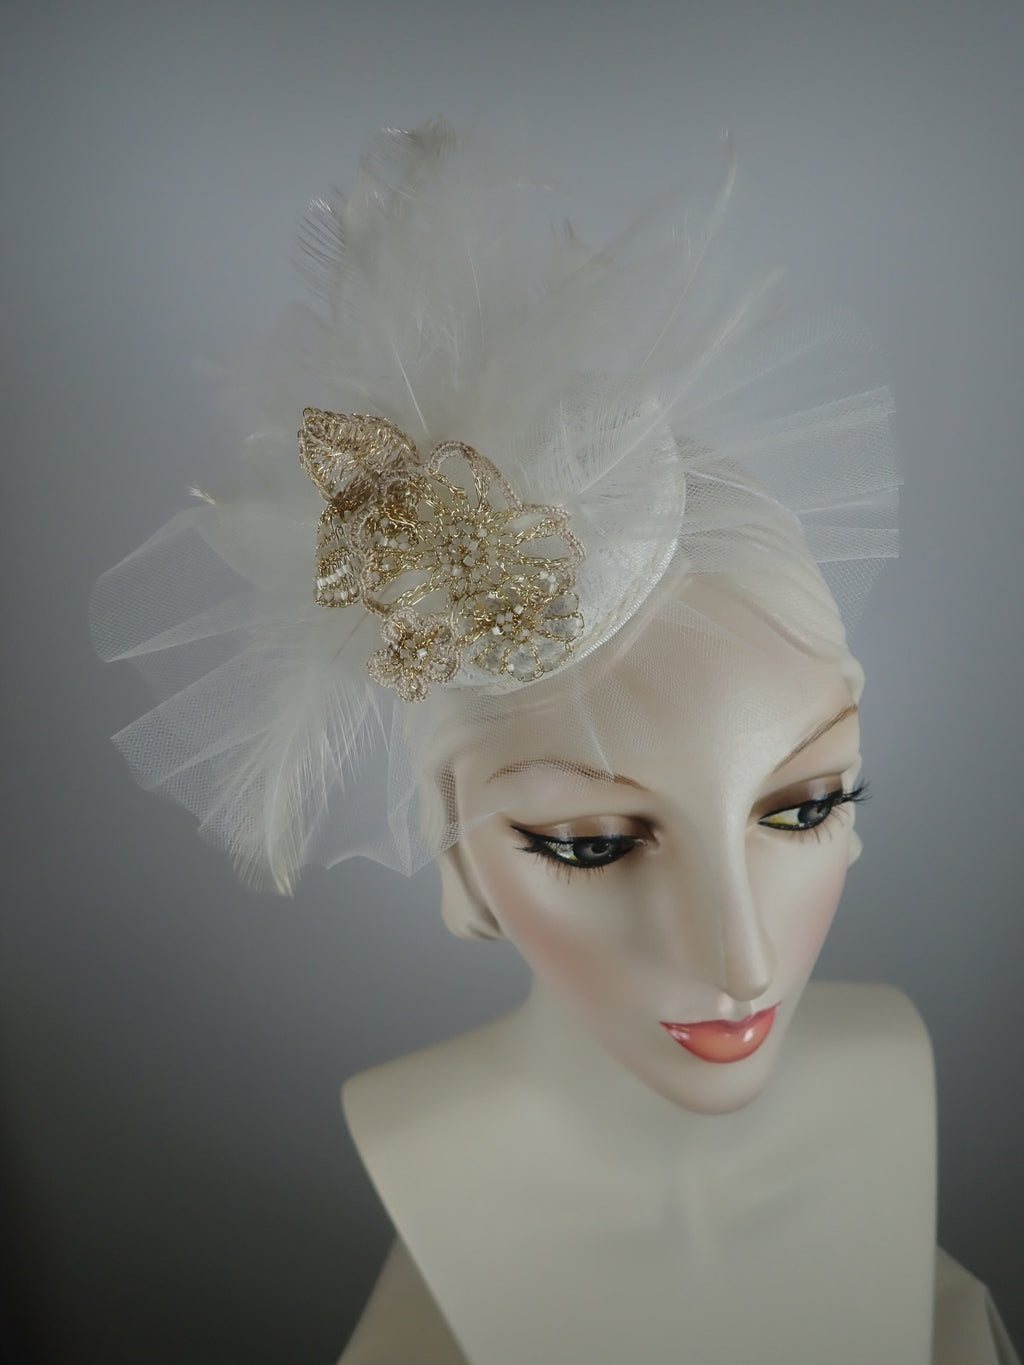 Off white bridal fascinator hat with hand crocheted bead and wire flowers